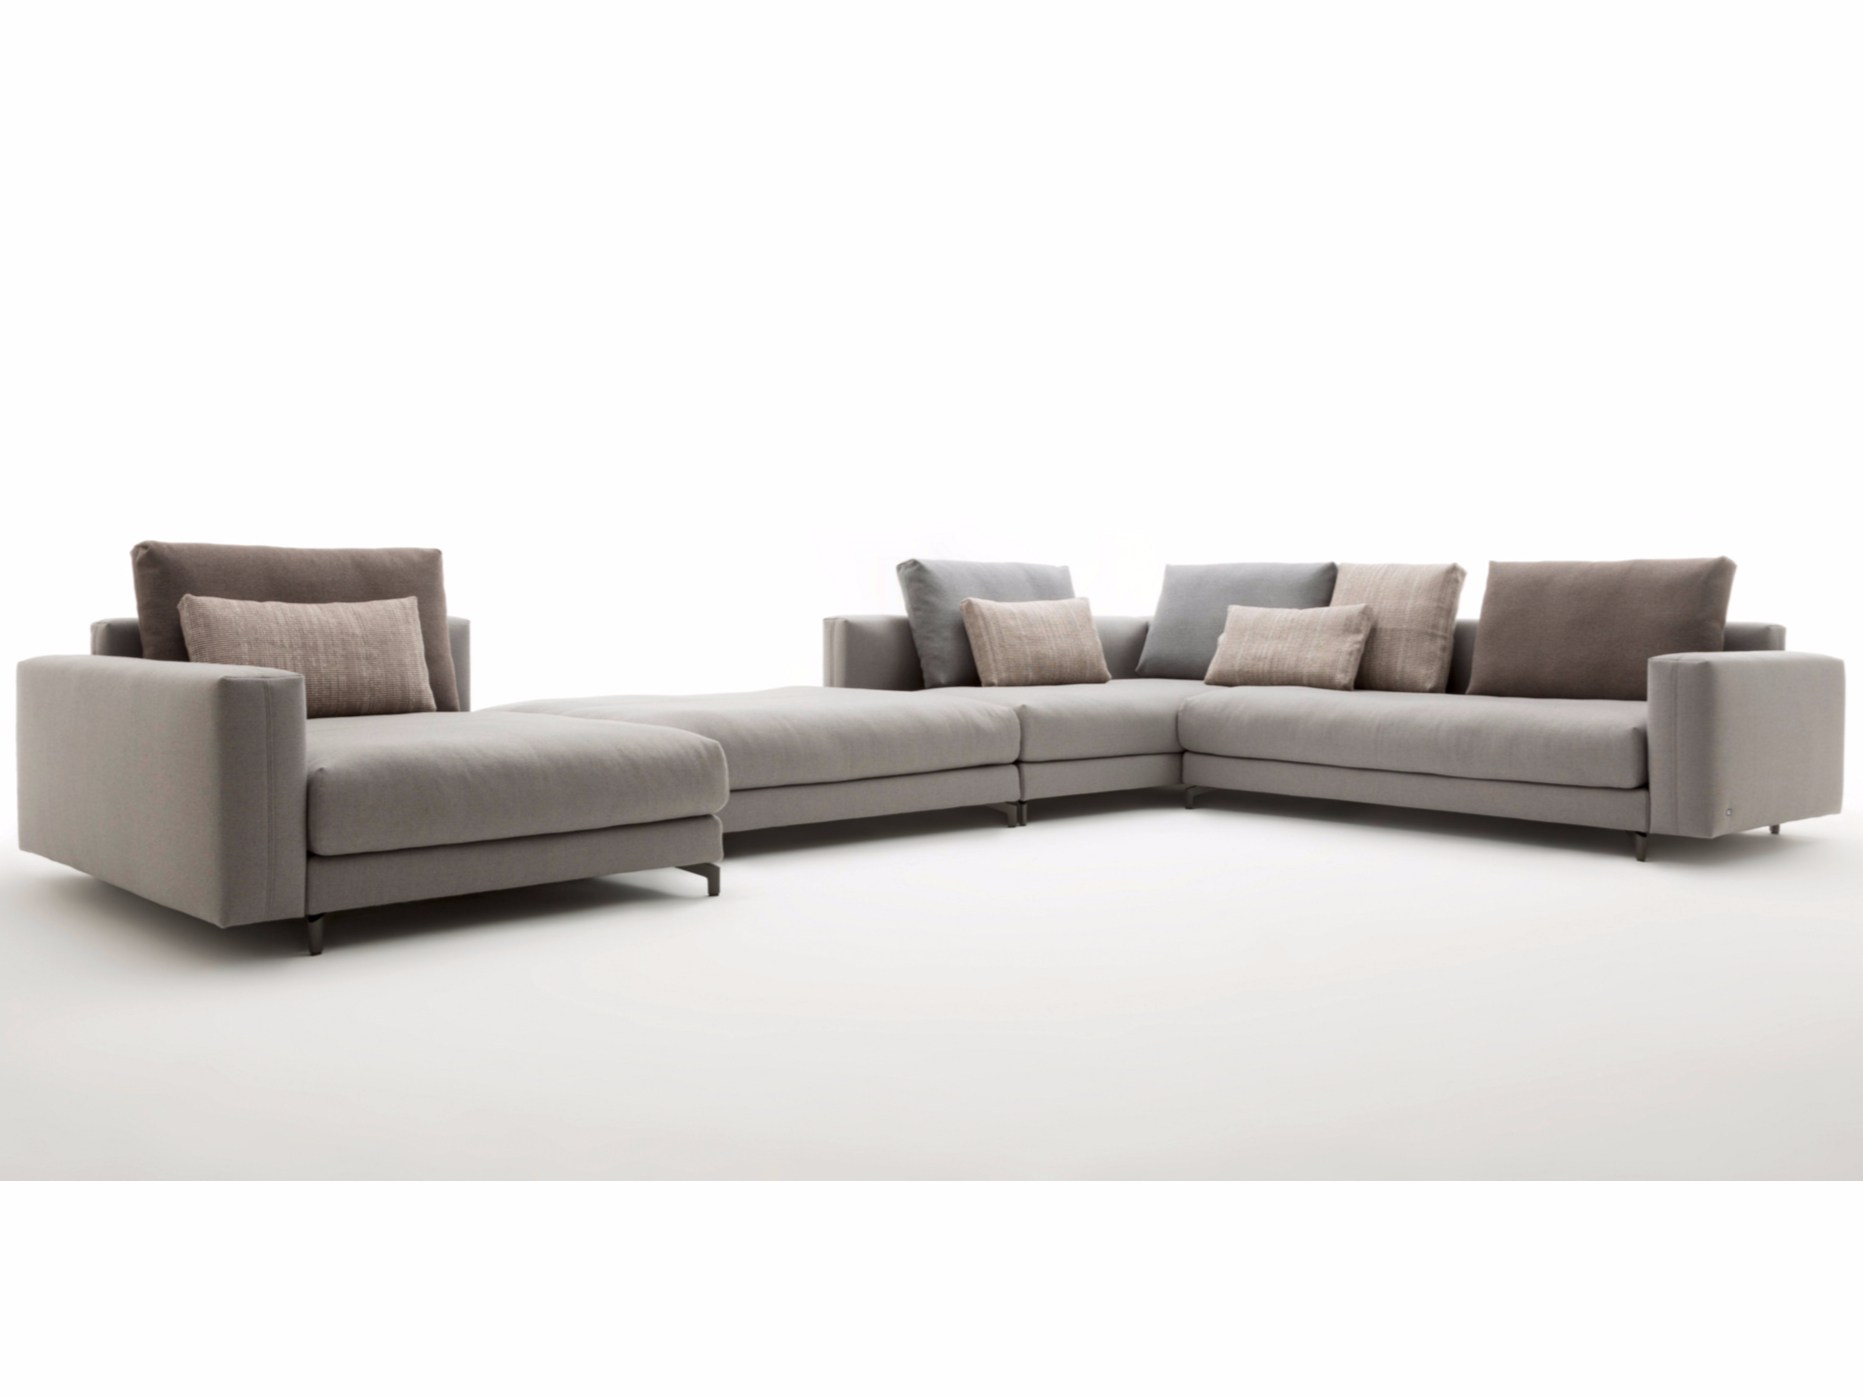 Sofa rolf benz mio for Sofa benz rolf